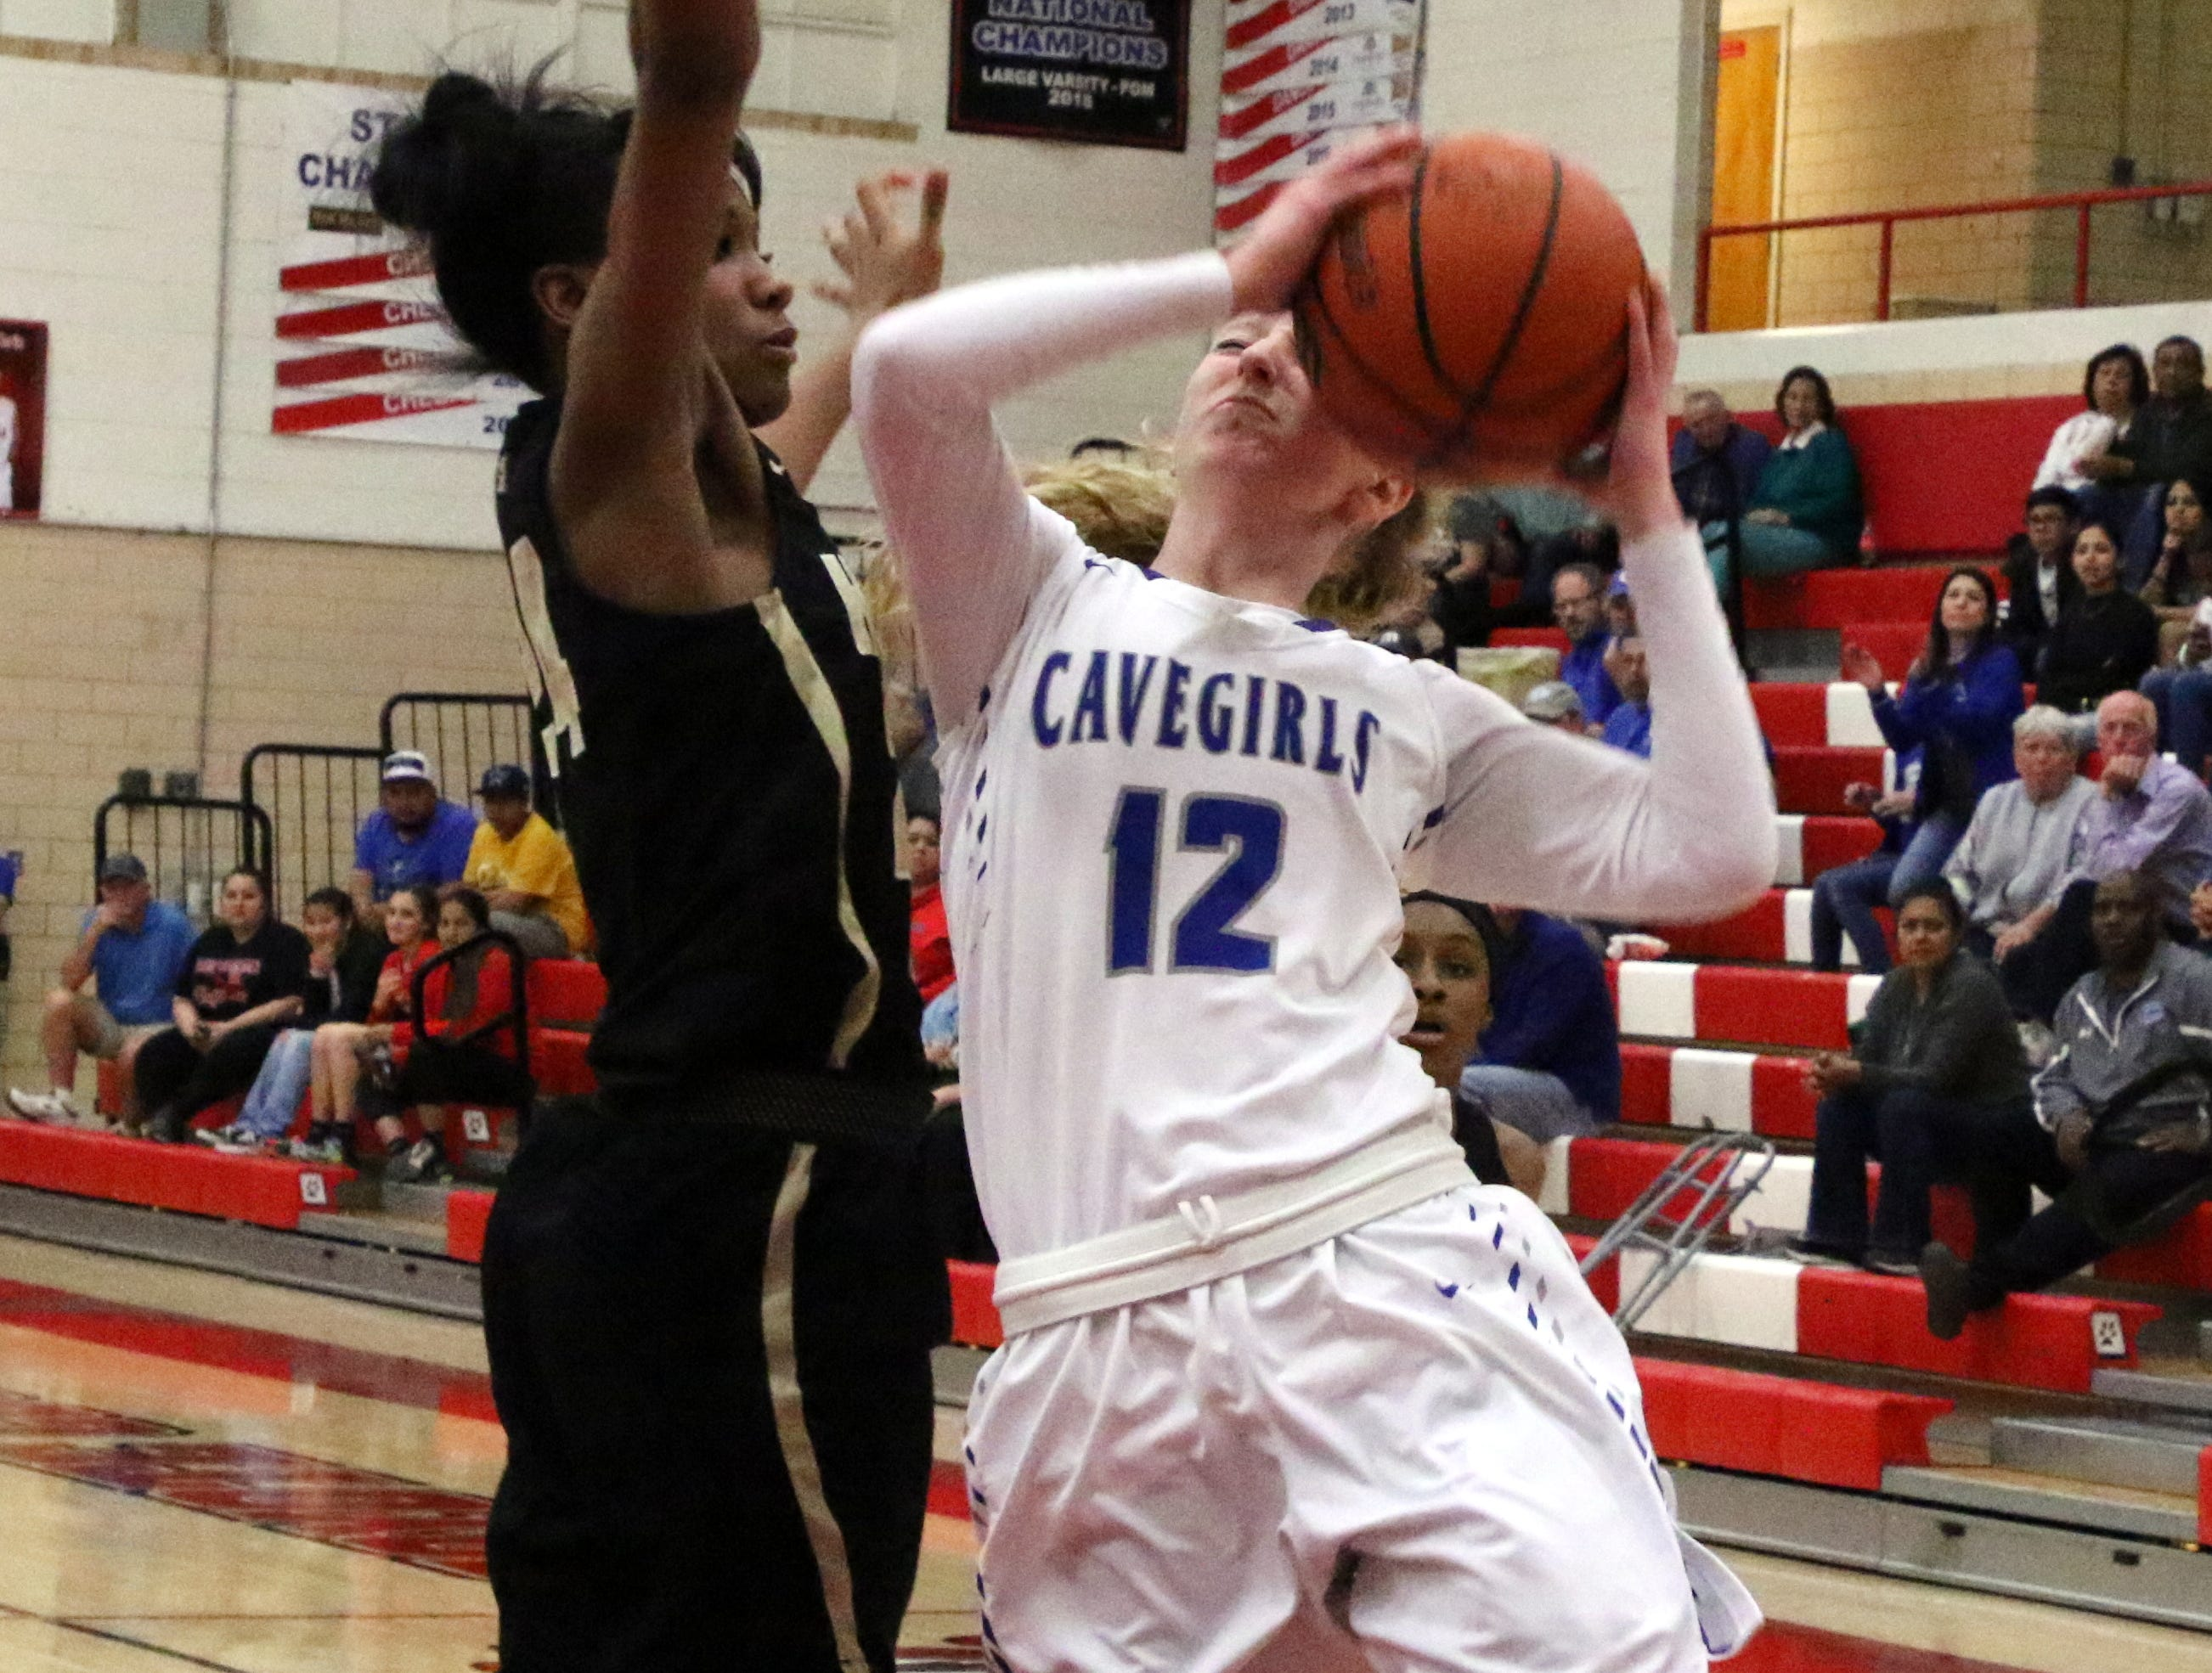 Carsyn Boswell is fouled while attempting a layup in the first quarter of Monday's one-game playoff against Hobbs to determine the No. 1 team in Class 4-5A. She finished with nine points.